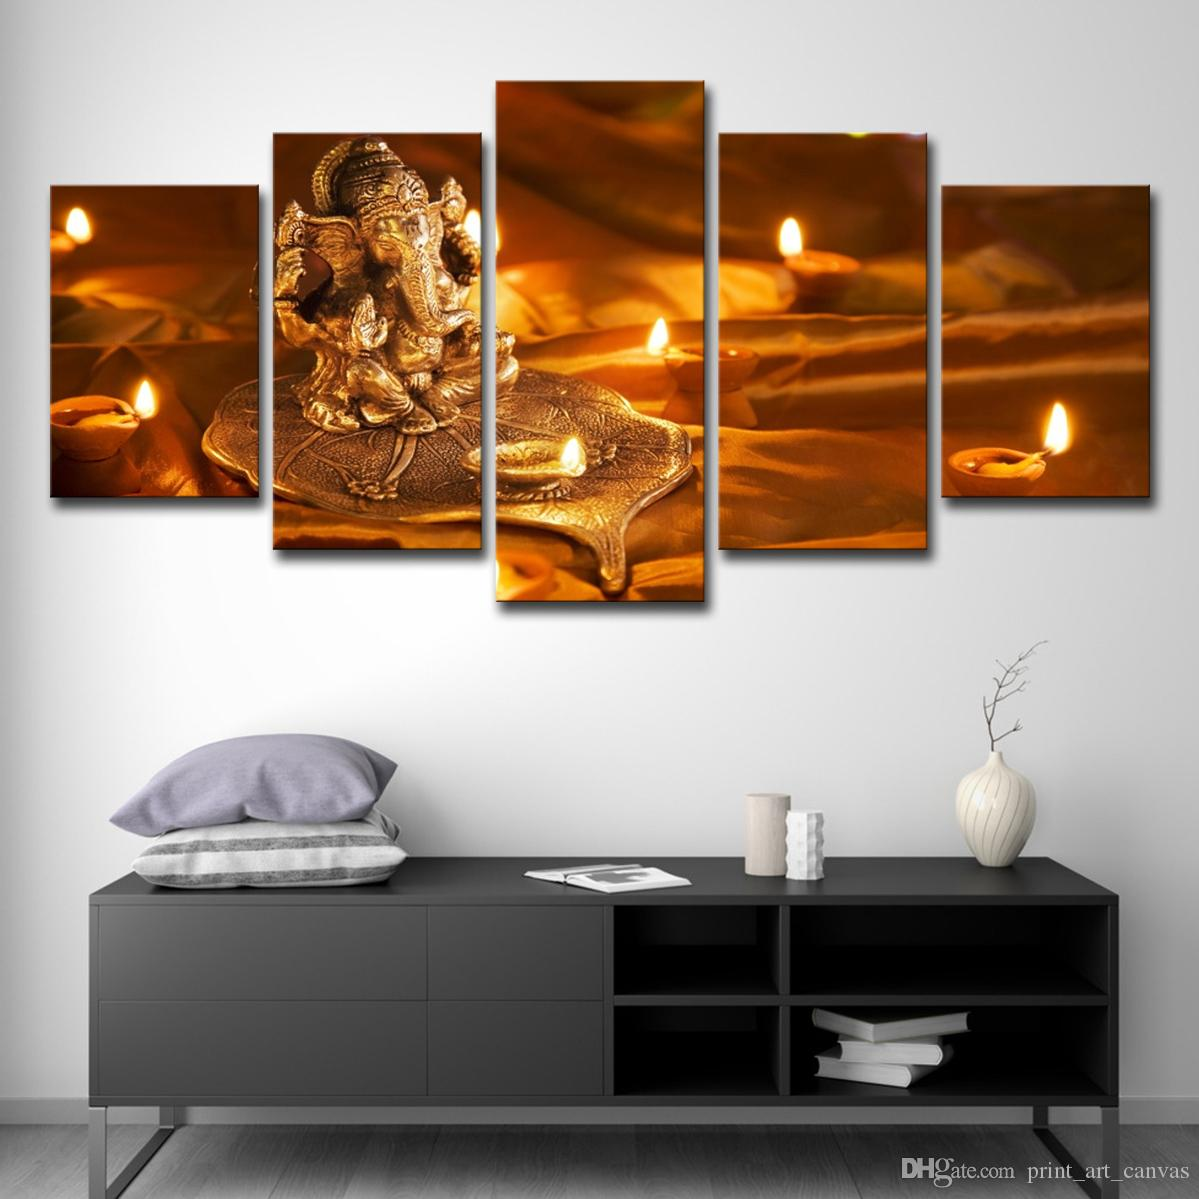 Modern Canvas Wall Art Pictures Modular Hd Prints Poster 5 Pieces Lord Ganesha Diwali Paintings For Living Room Decor